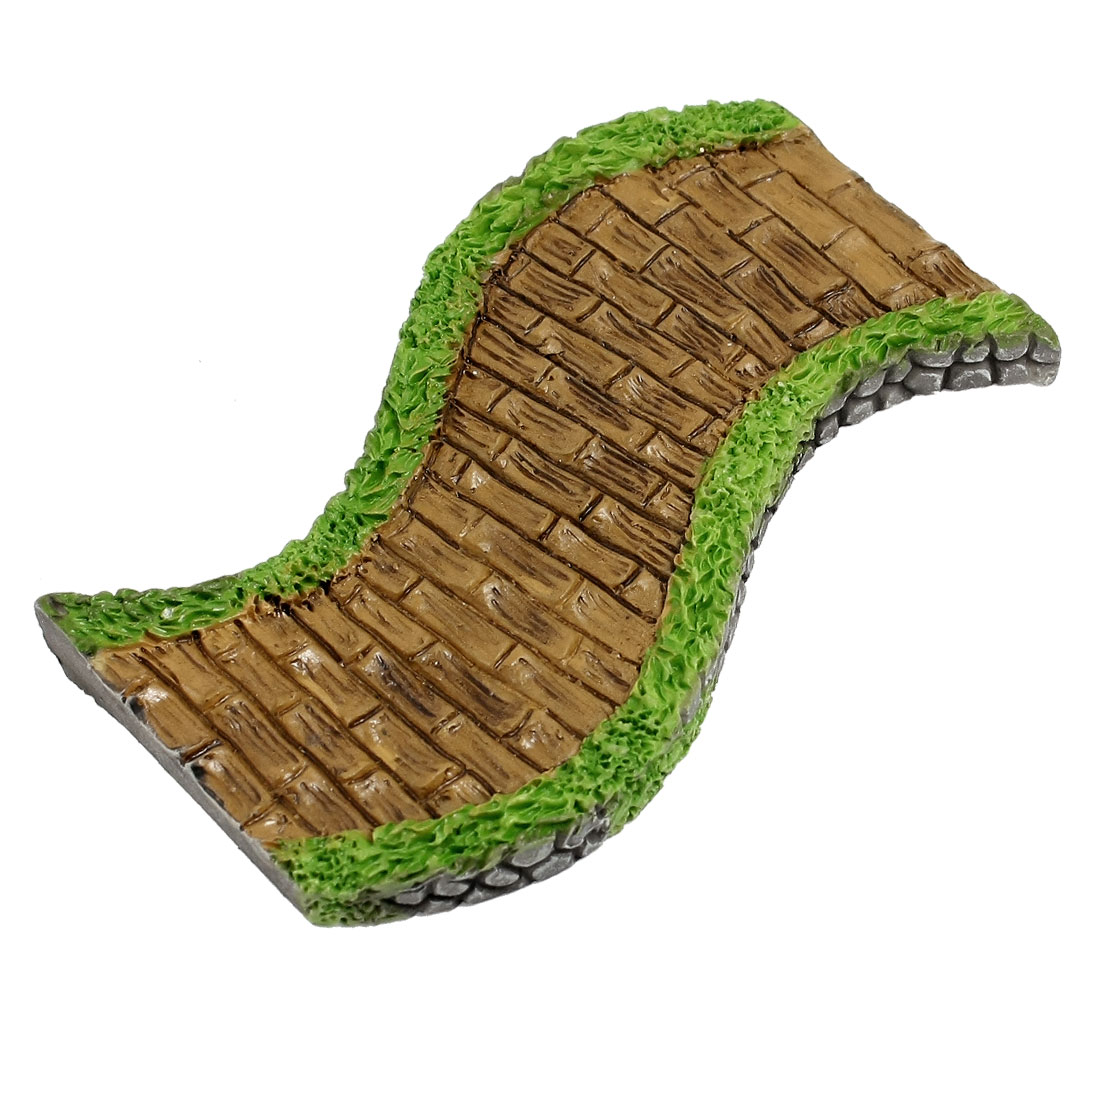 Fish Tank Landscape Moss Pathway Alley Shaped Aquarium Craft ...